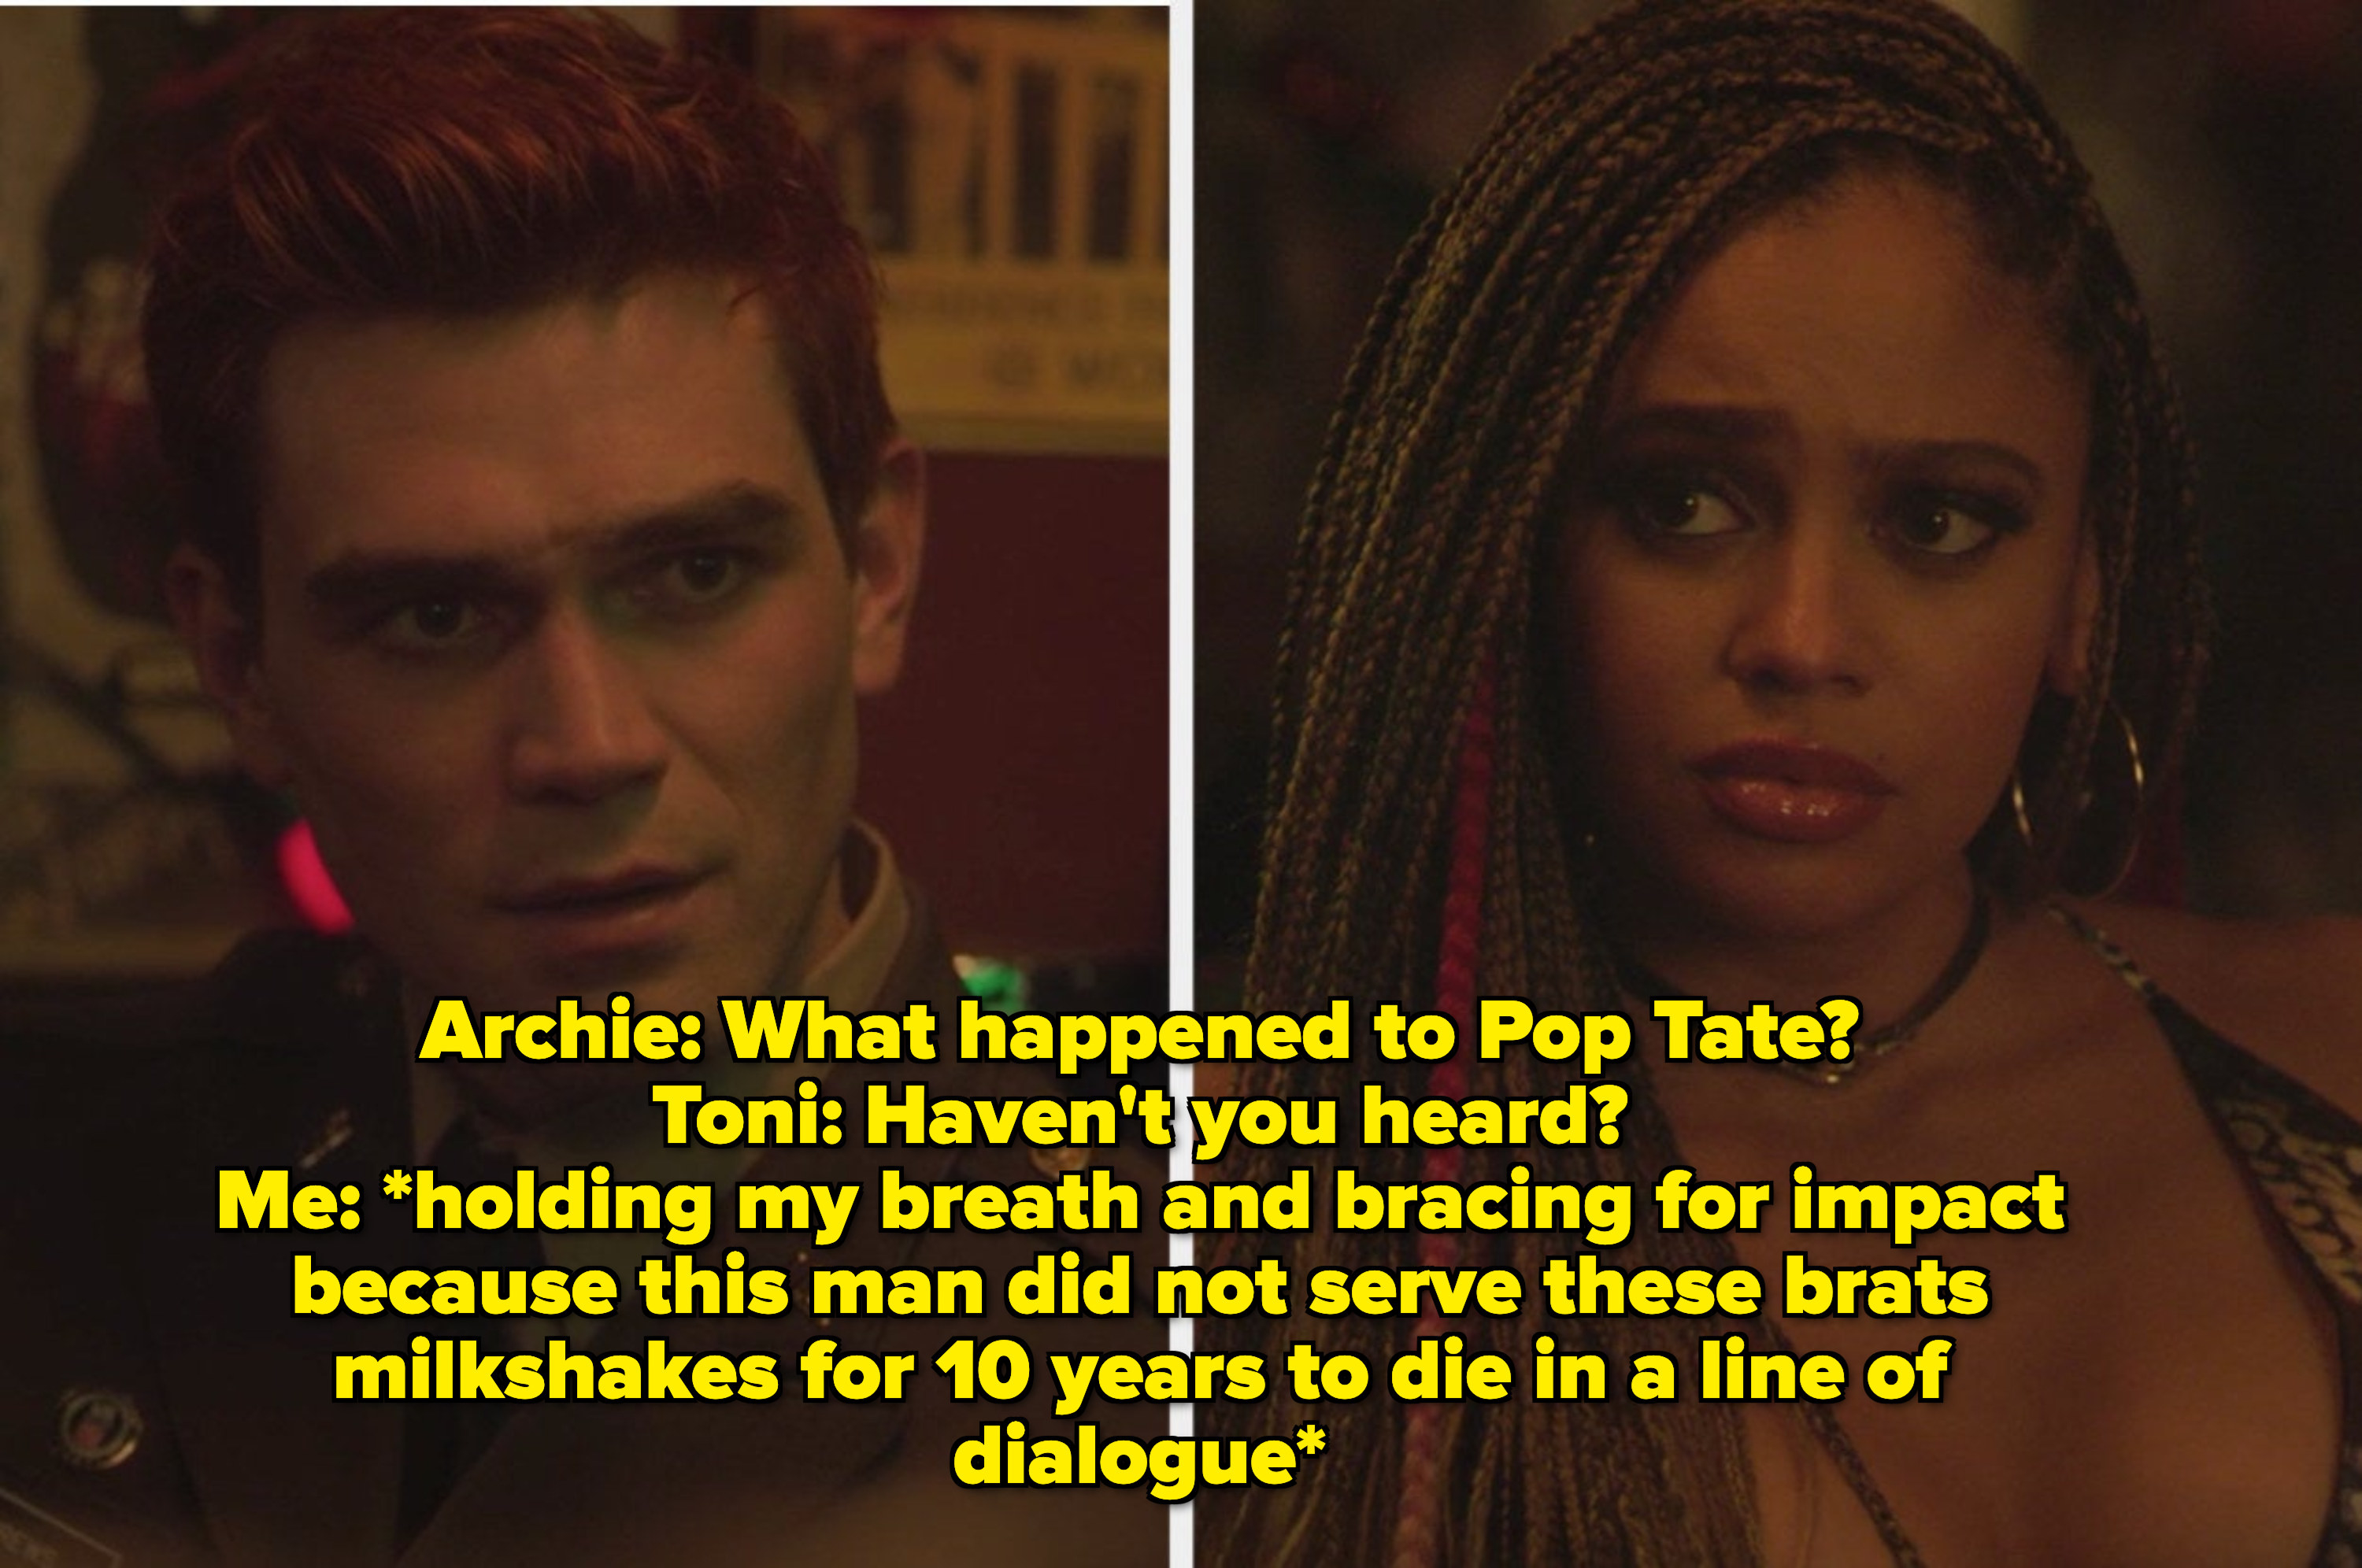 Archie and Toni talking about Pop Tate